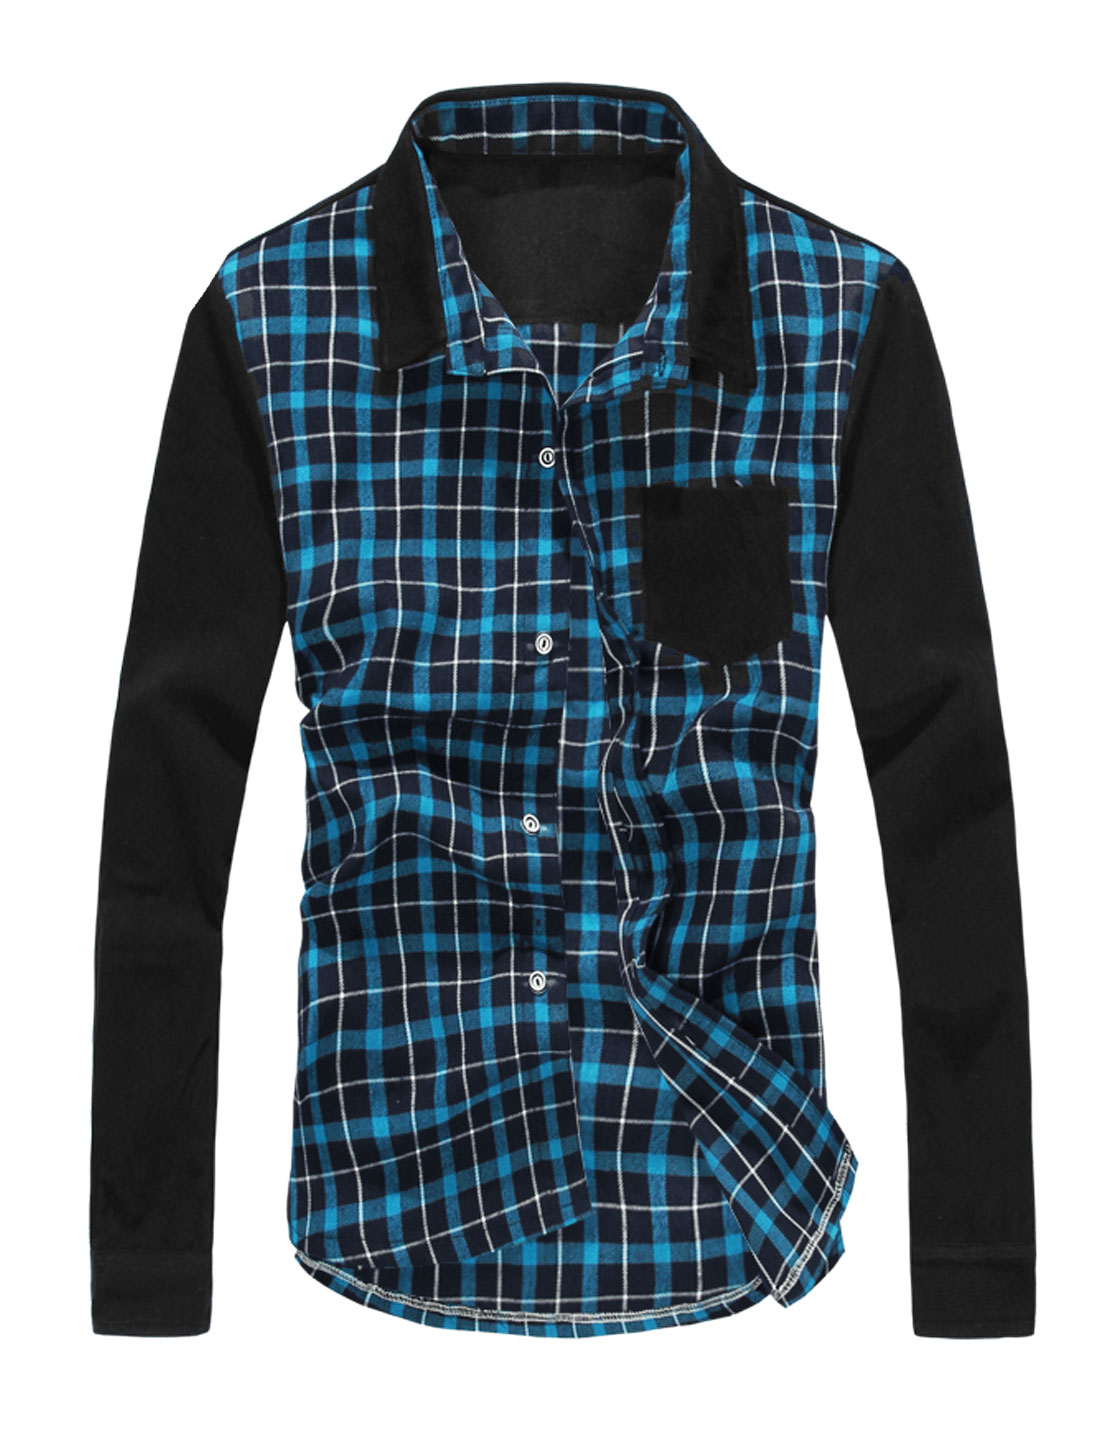 Men Checkered Pattern Chest Pocket Corduroy Patched Sleeves Shirt Blue Black M